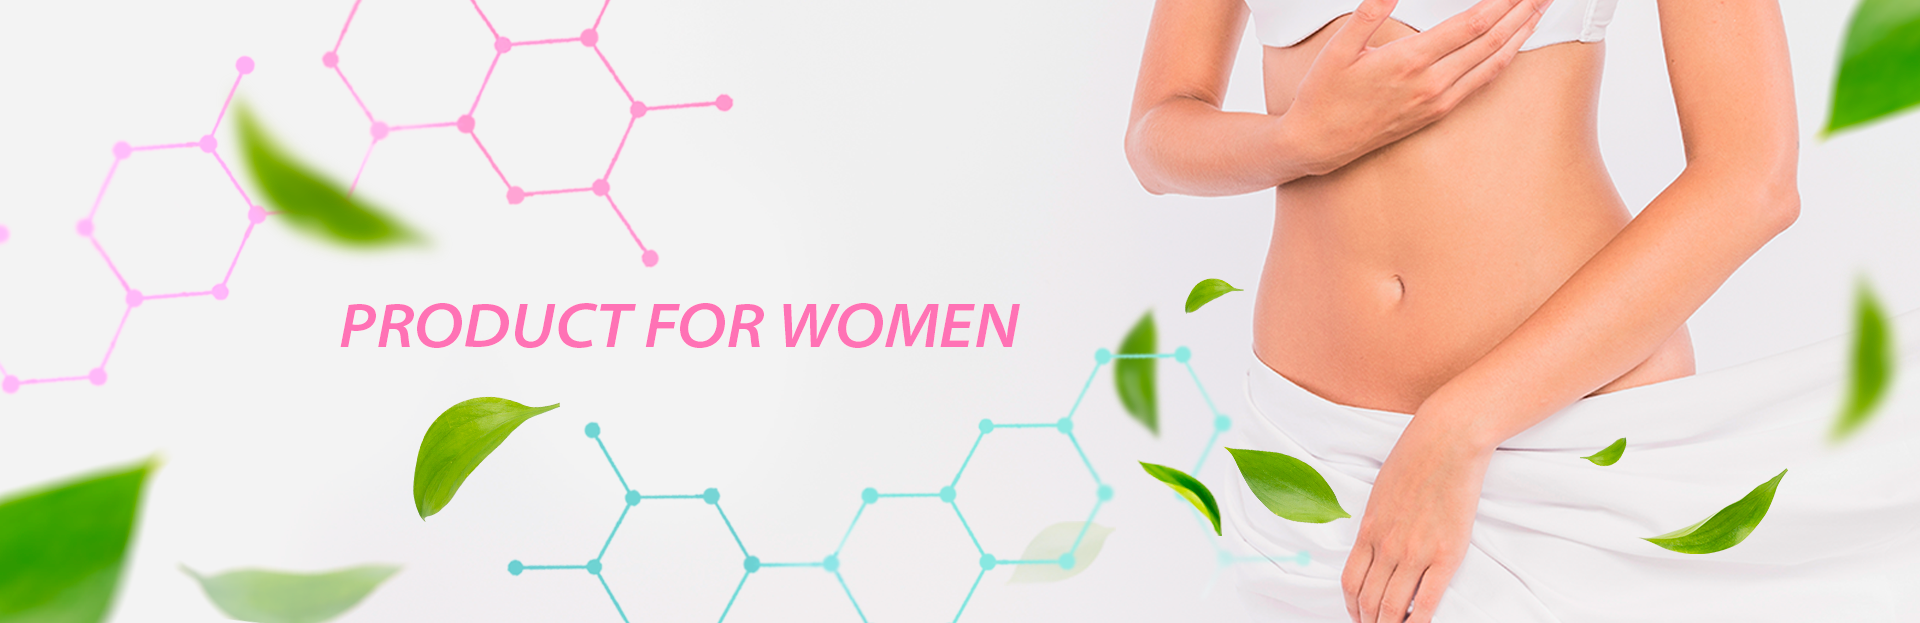 Product for women